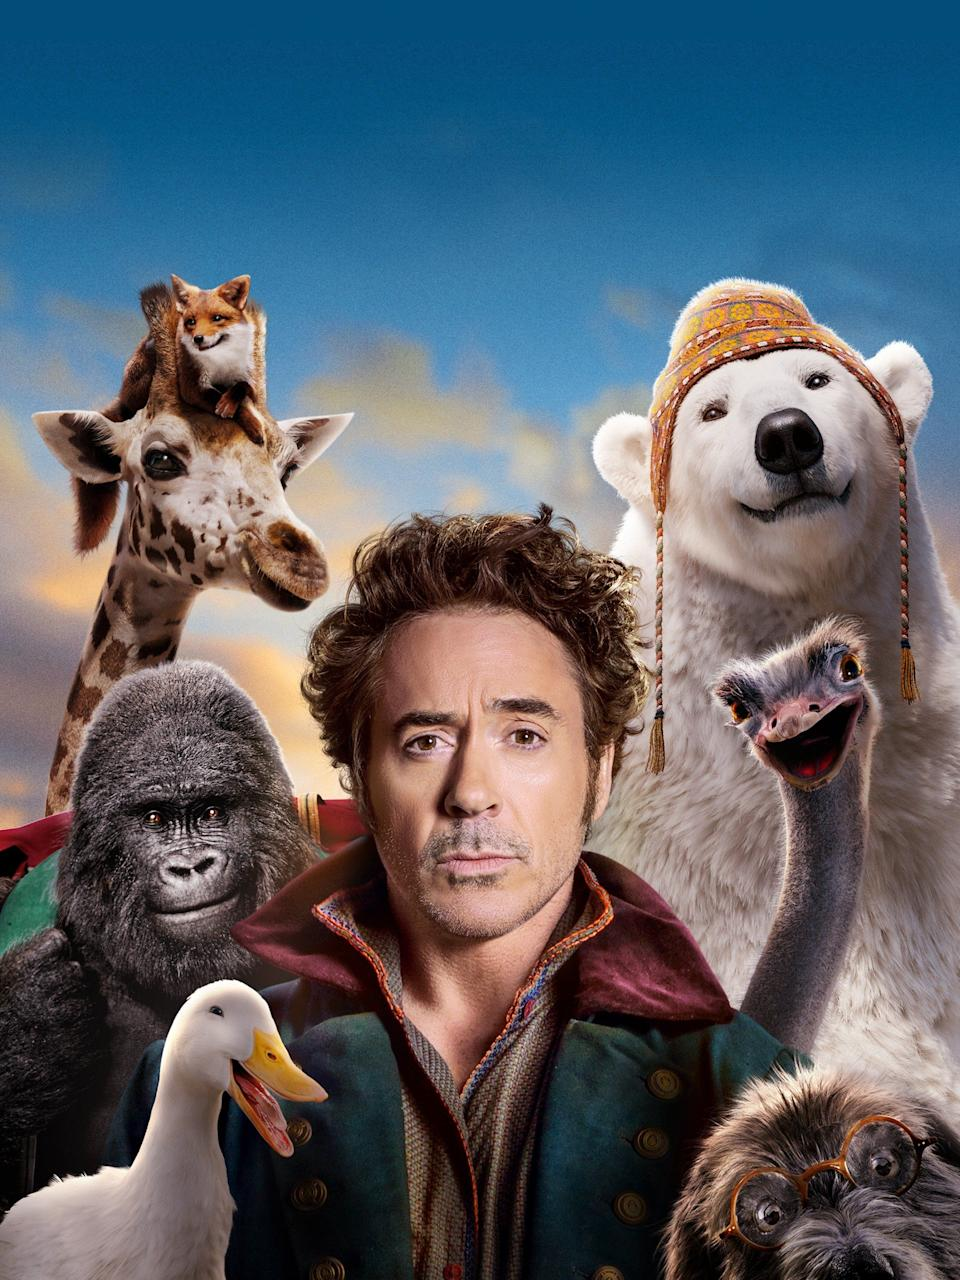 Robert Downey Jr. as Dr. John Dolittle, and the animals in Dolittle.